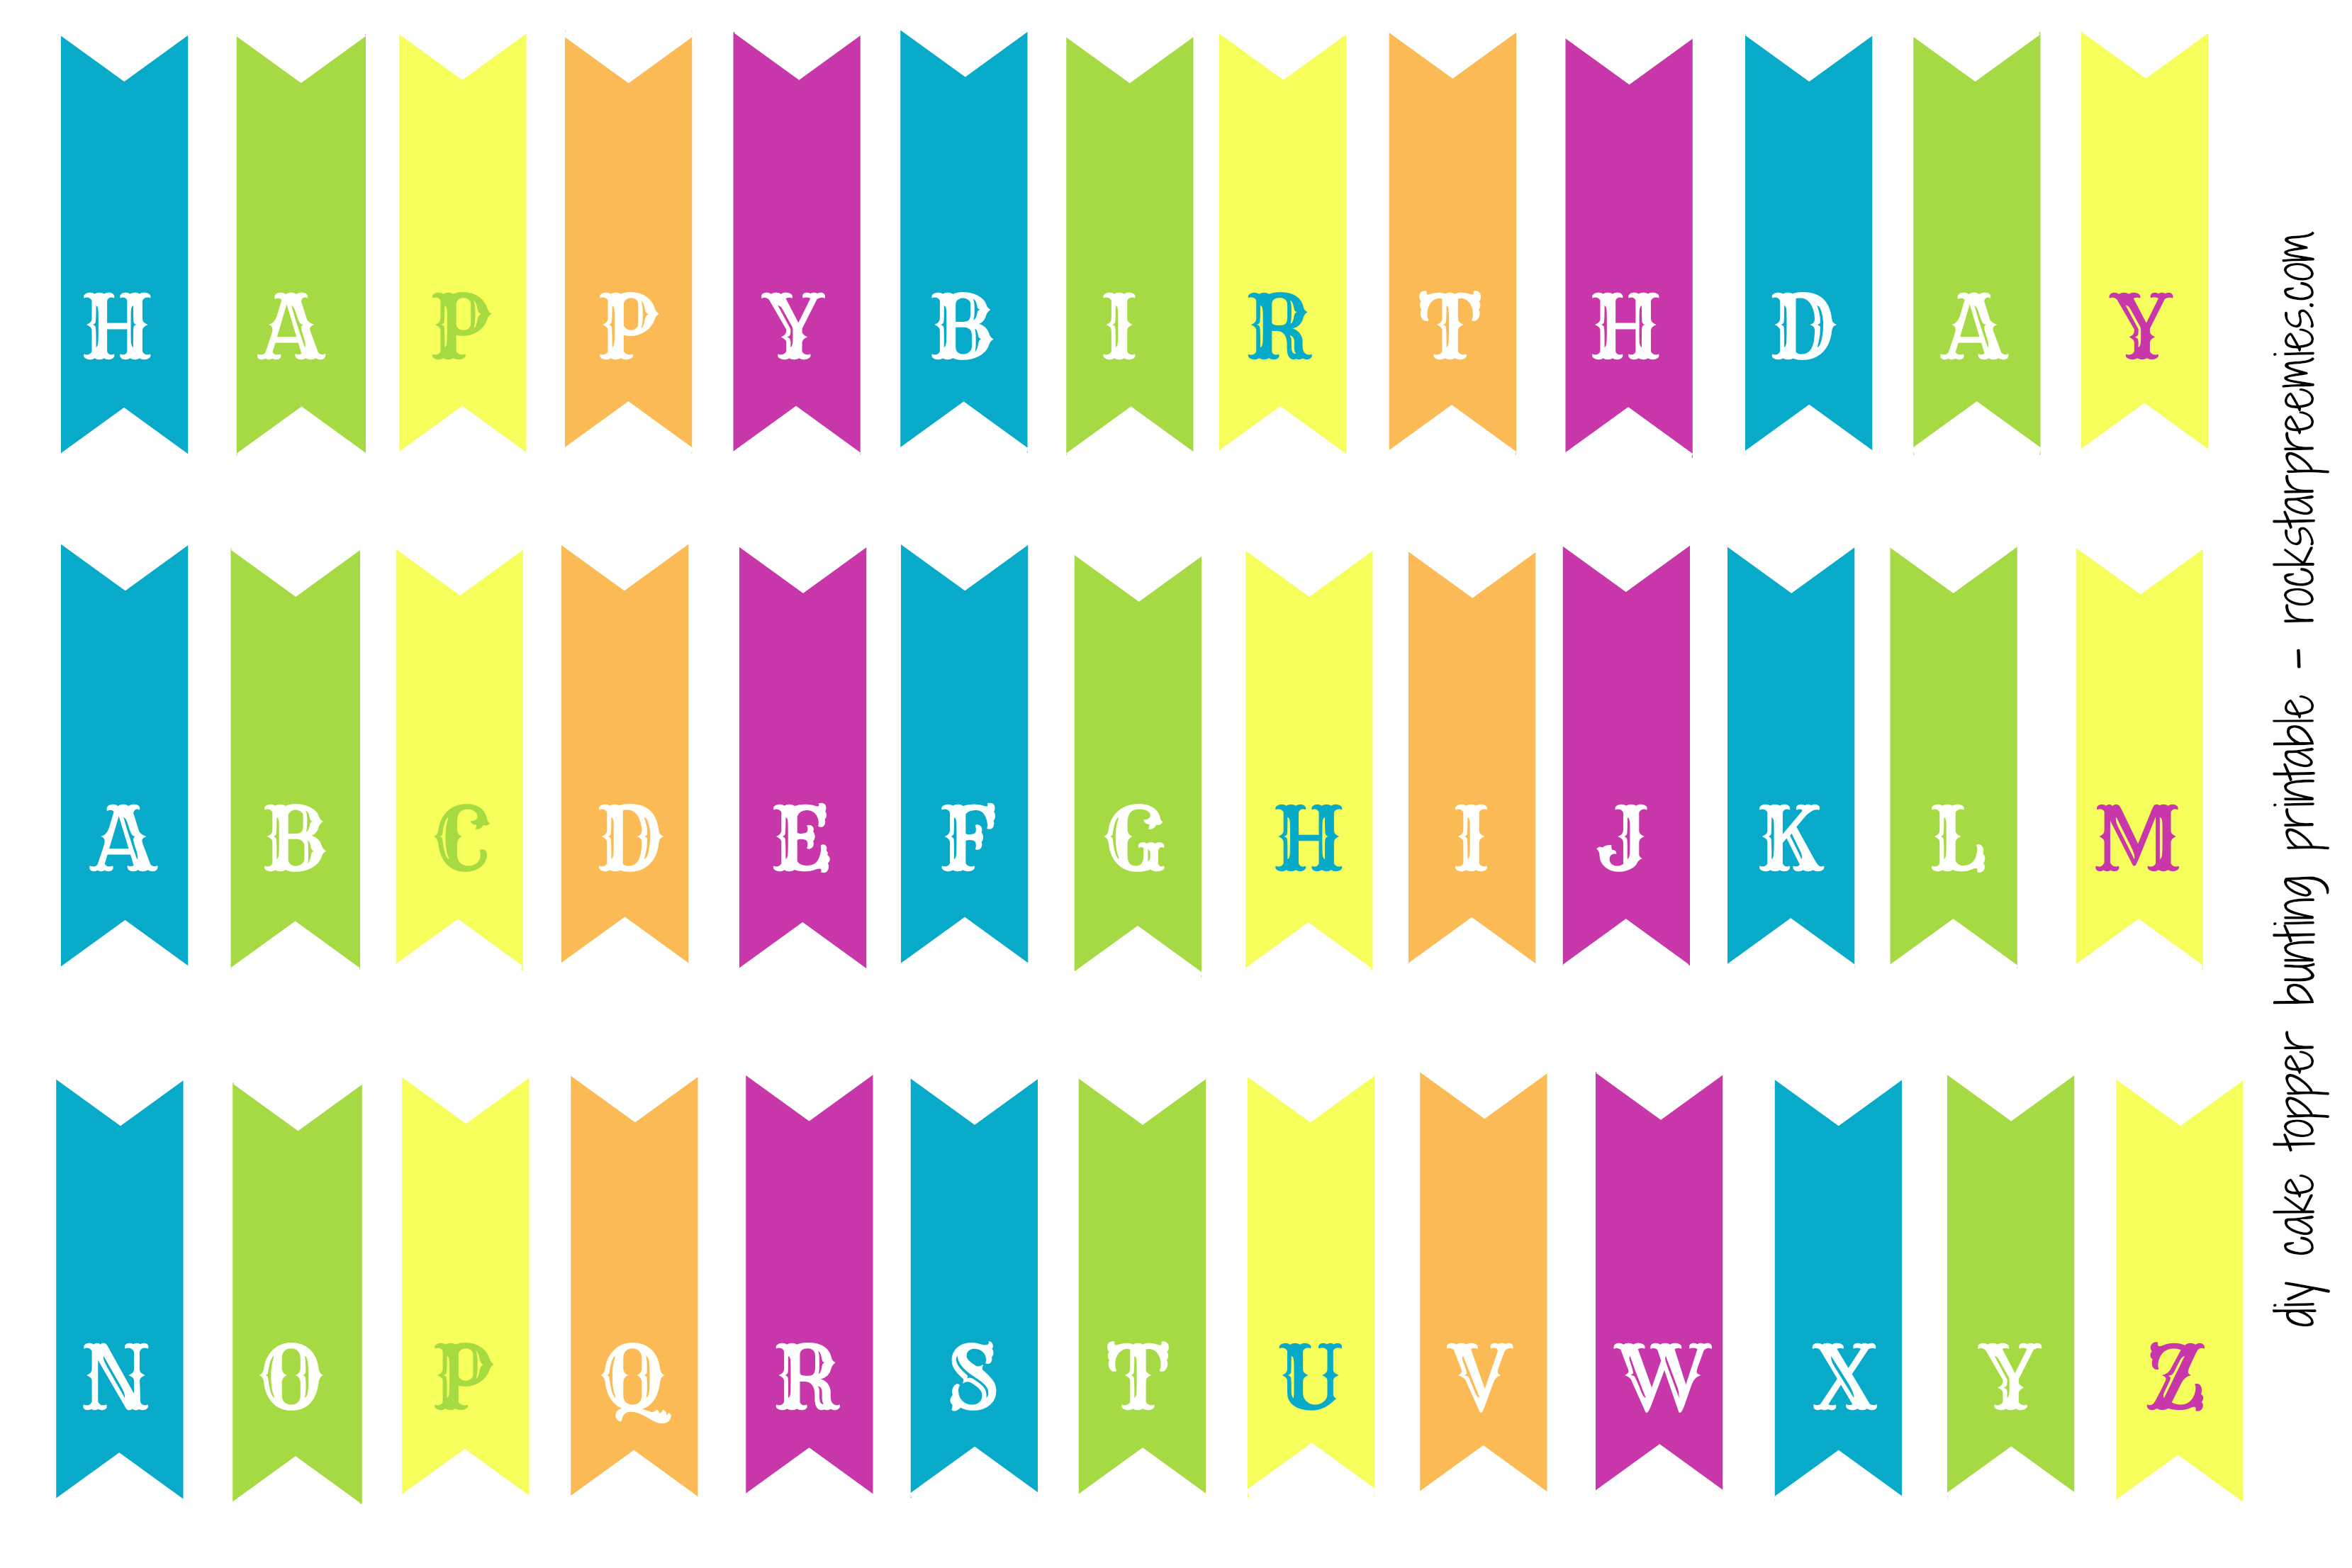 7 Best Images of Birthday Letters Printable - Free ...